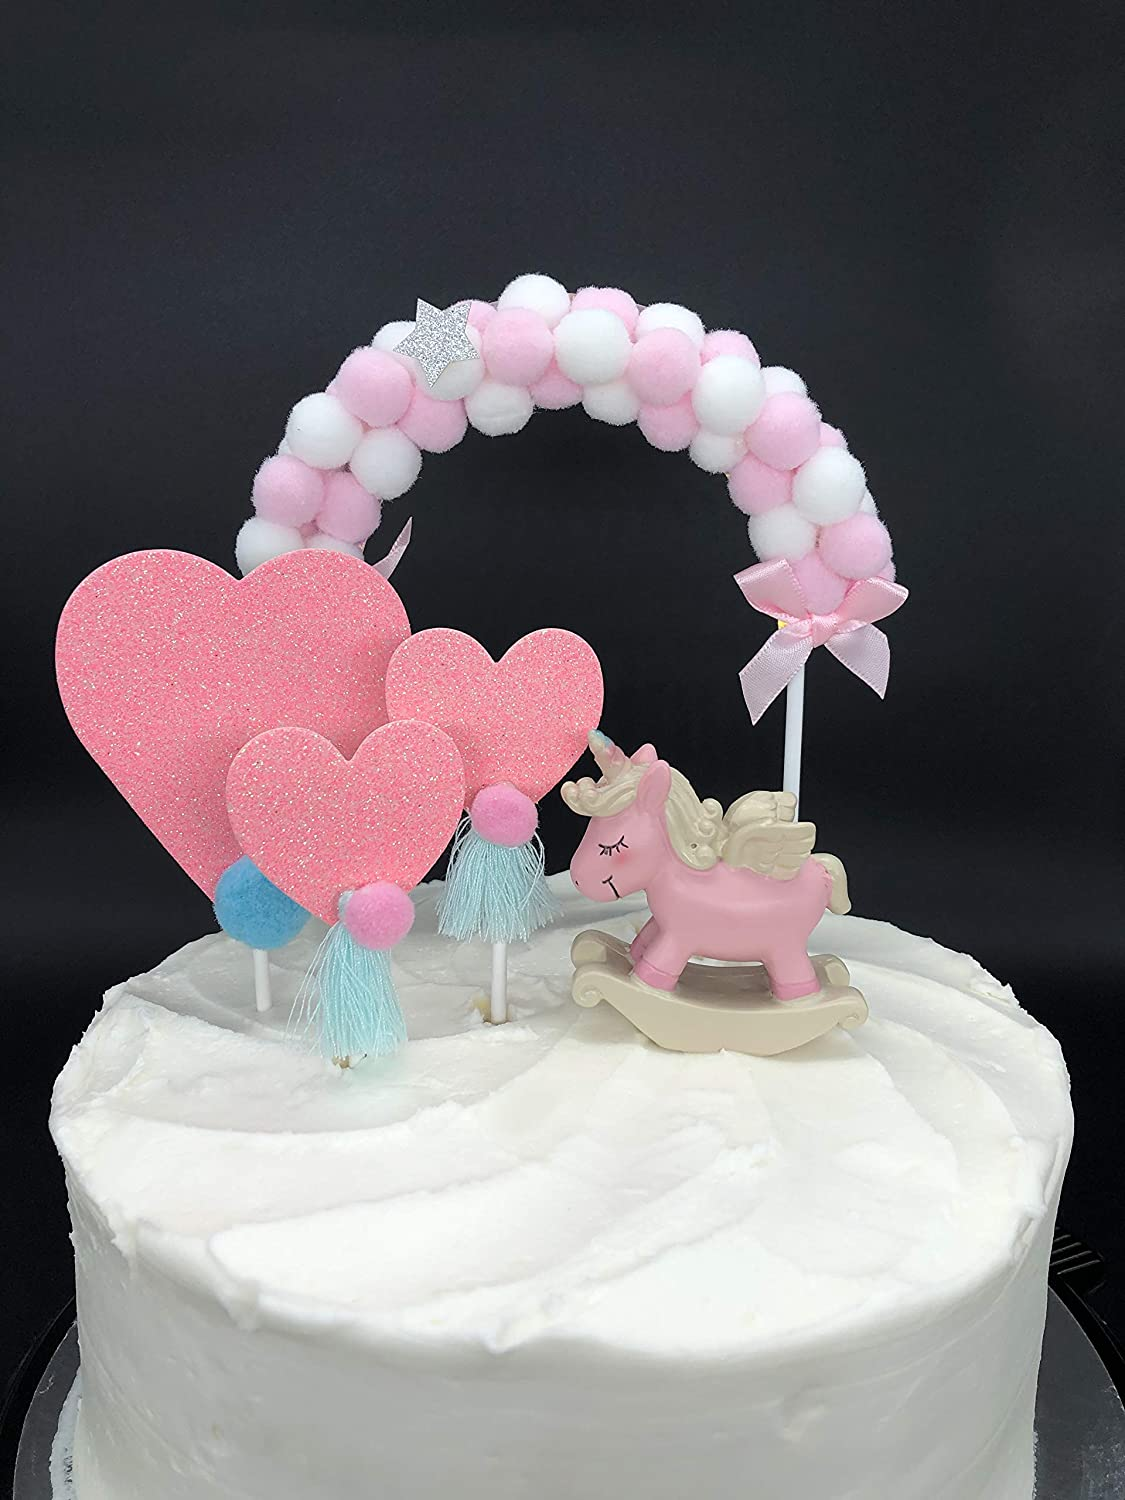 Baby Showers Parties Unicorn Cake Topper 5pcs with Pom Pom Arch and 3 Hearts for Birthdays Blue